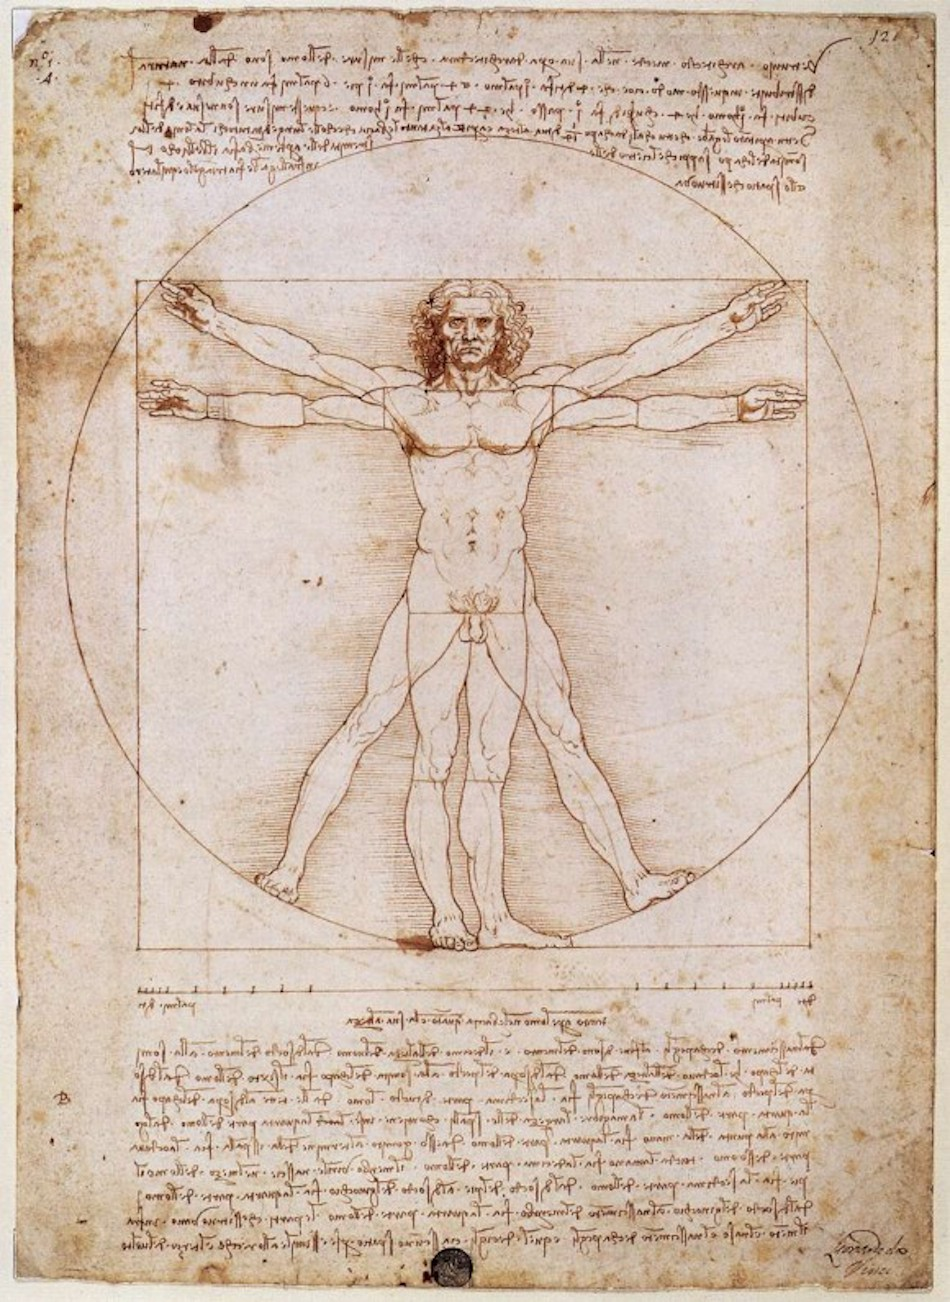 """Several artists of the Renaissance incorporated the golden mean in their works, not least of whom was Leonardo da Vinci, who used this proportion in well-known pieces such as """"The Last Supper"""" and """"The Vitruvian Man."""" (Image: cesar bojorquez via flickr CC BY 2.0 )"""